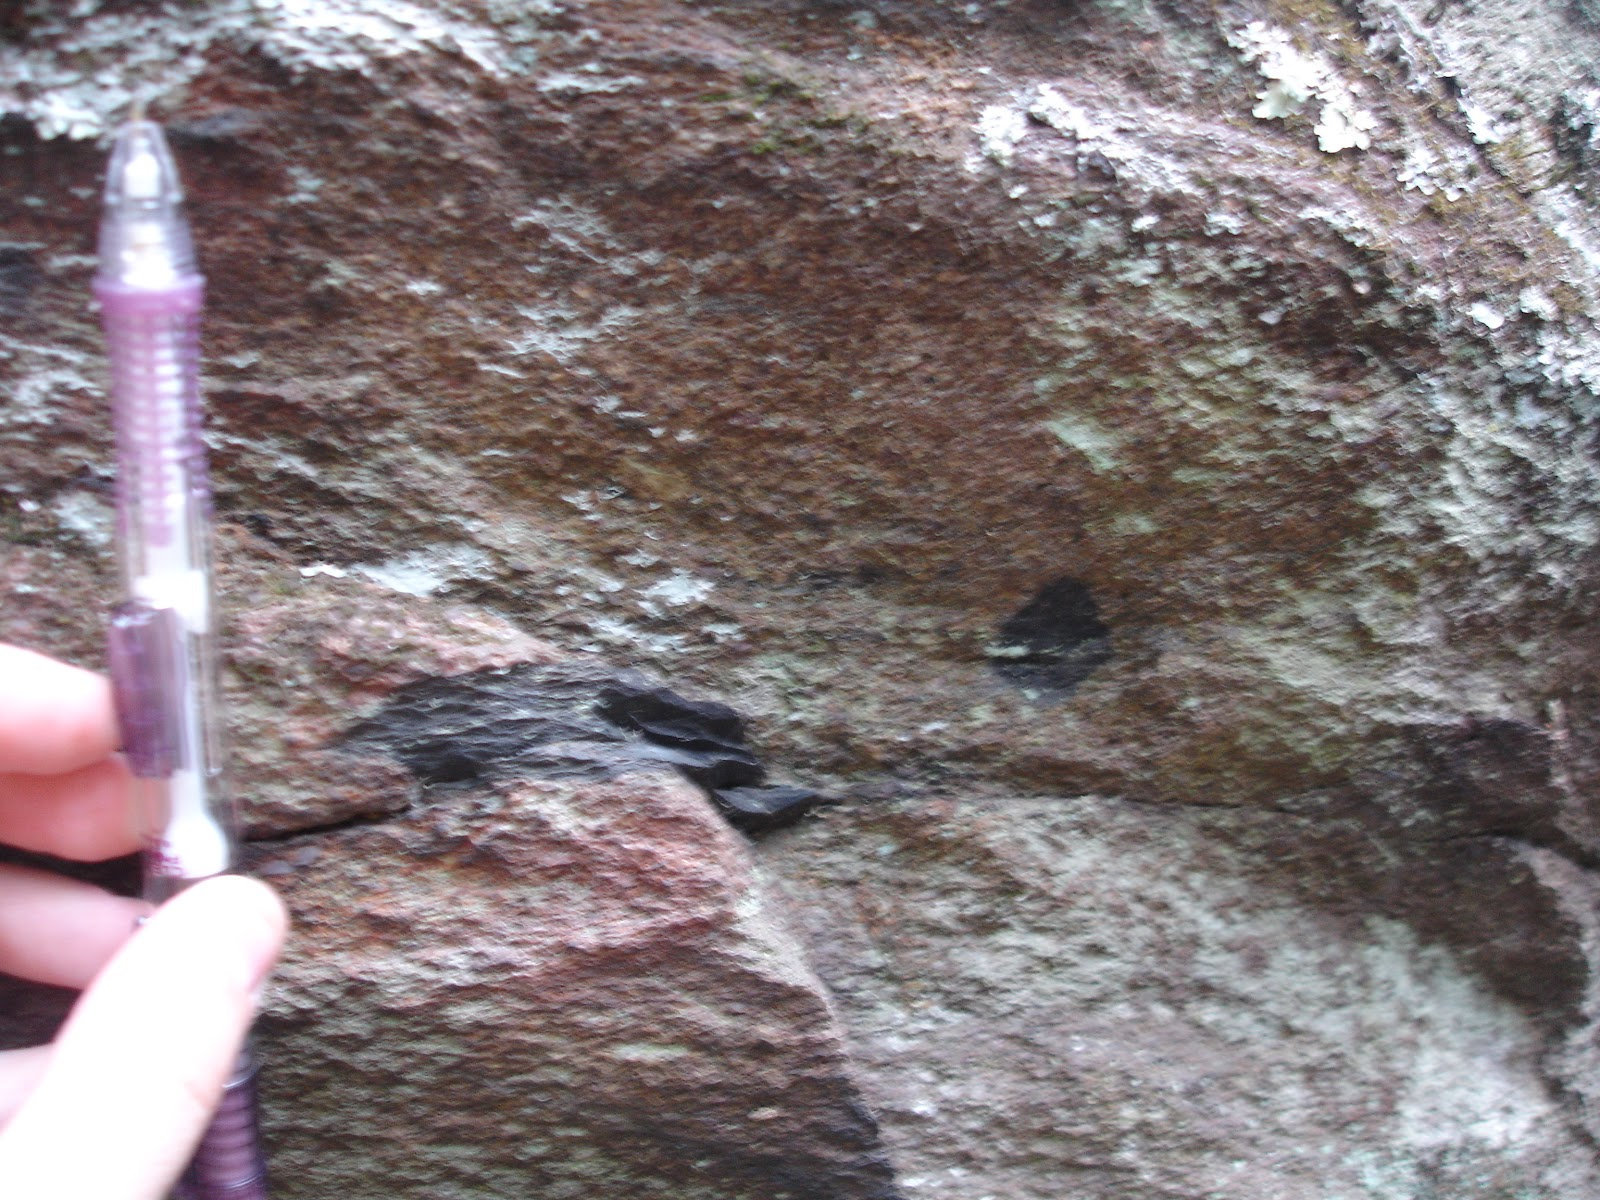 here are some nice examples of ripped up clasts embedded in the swift run formation